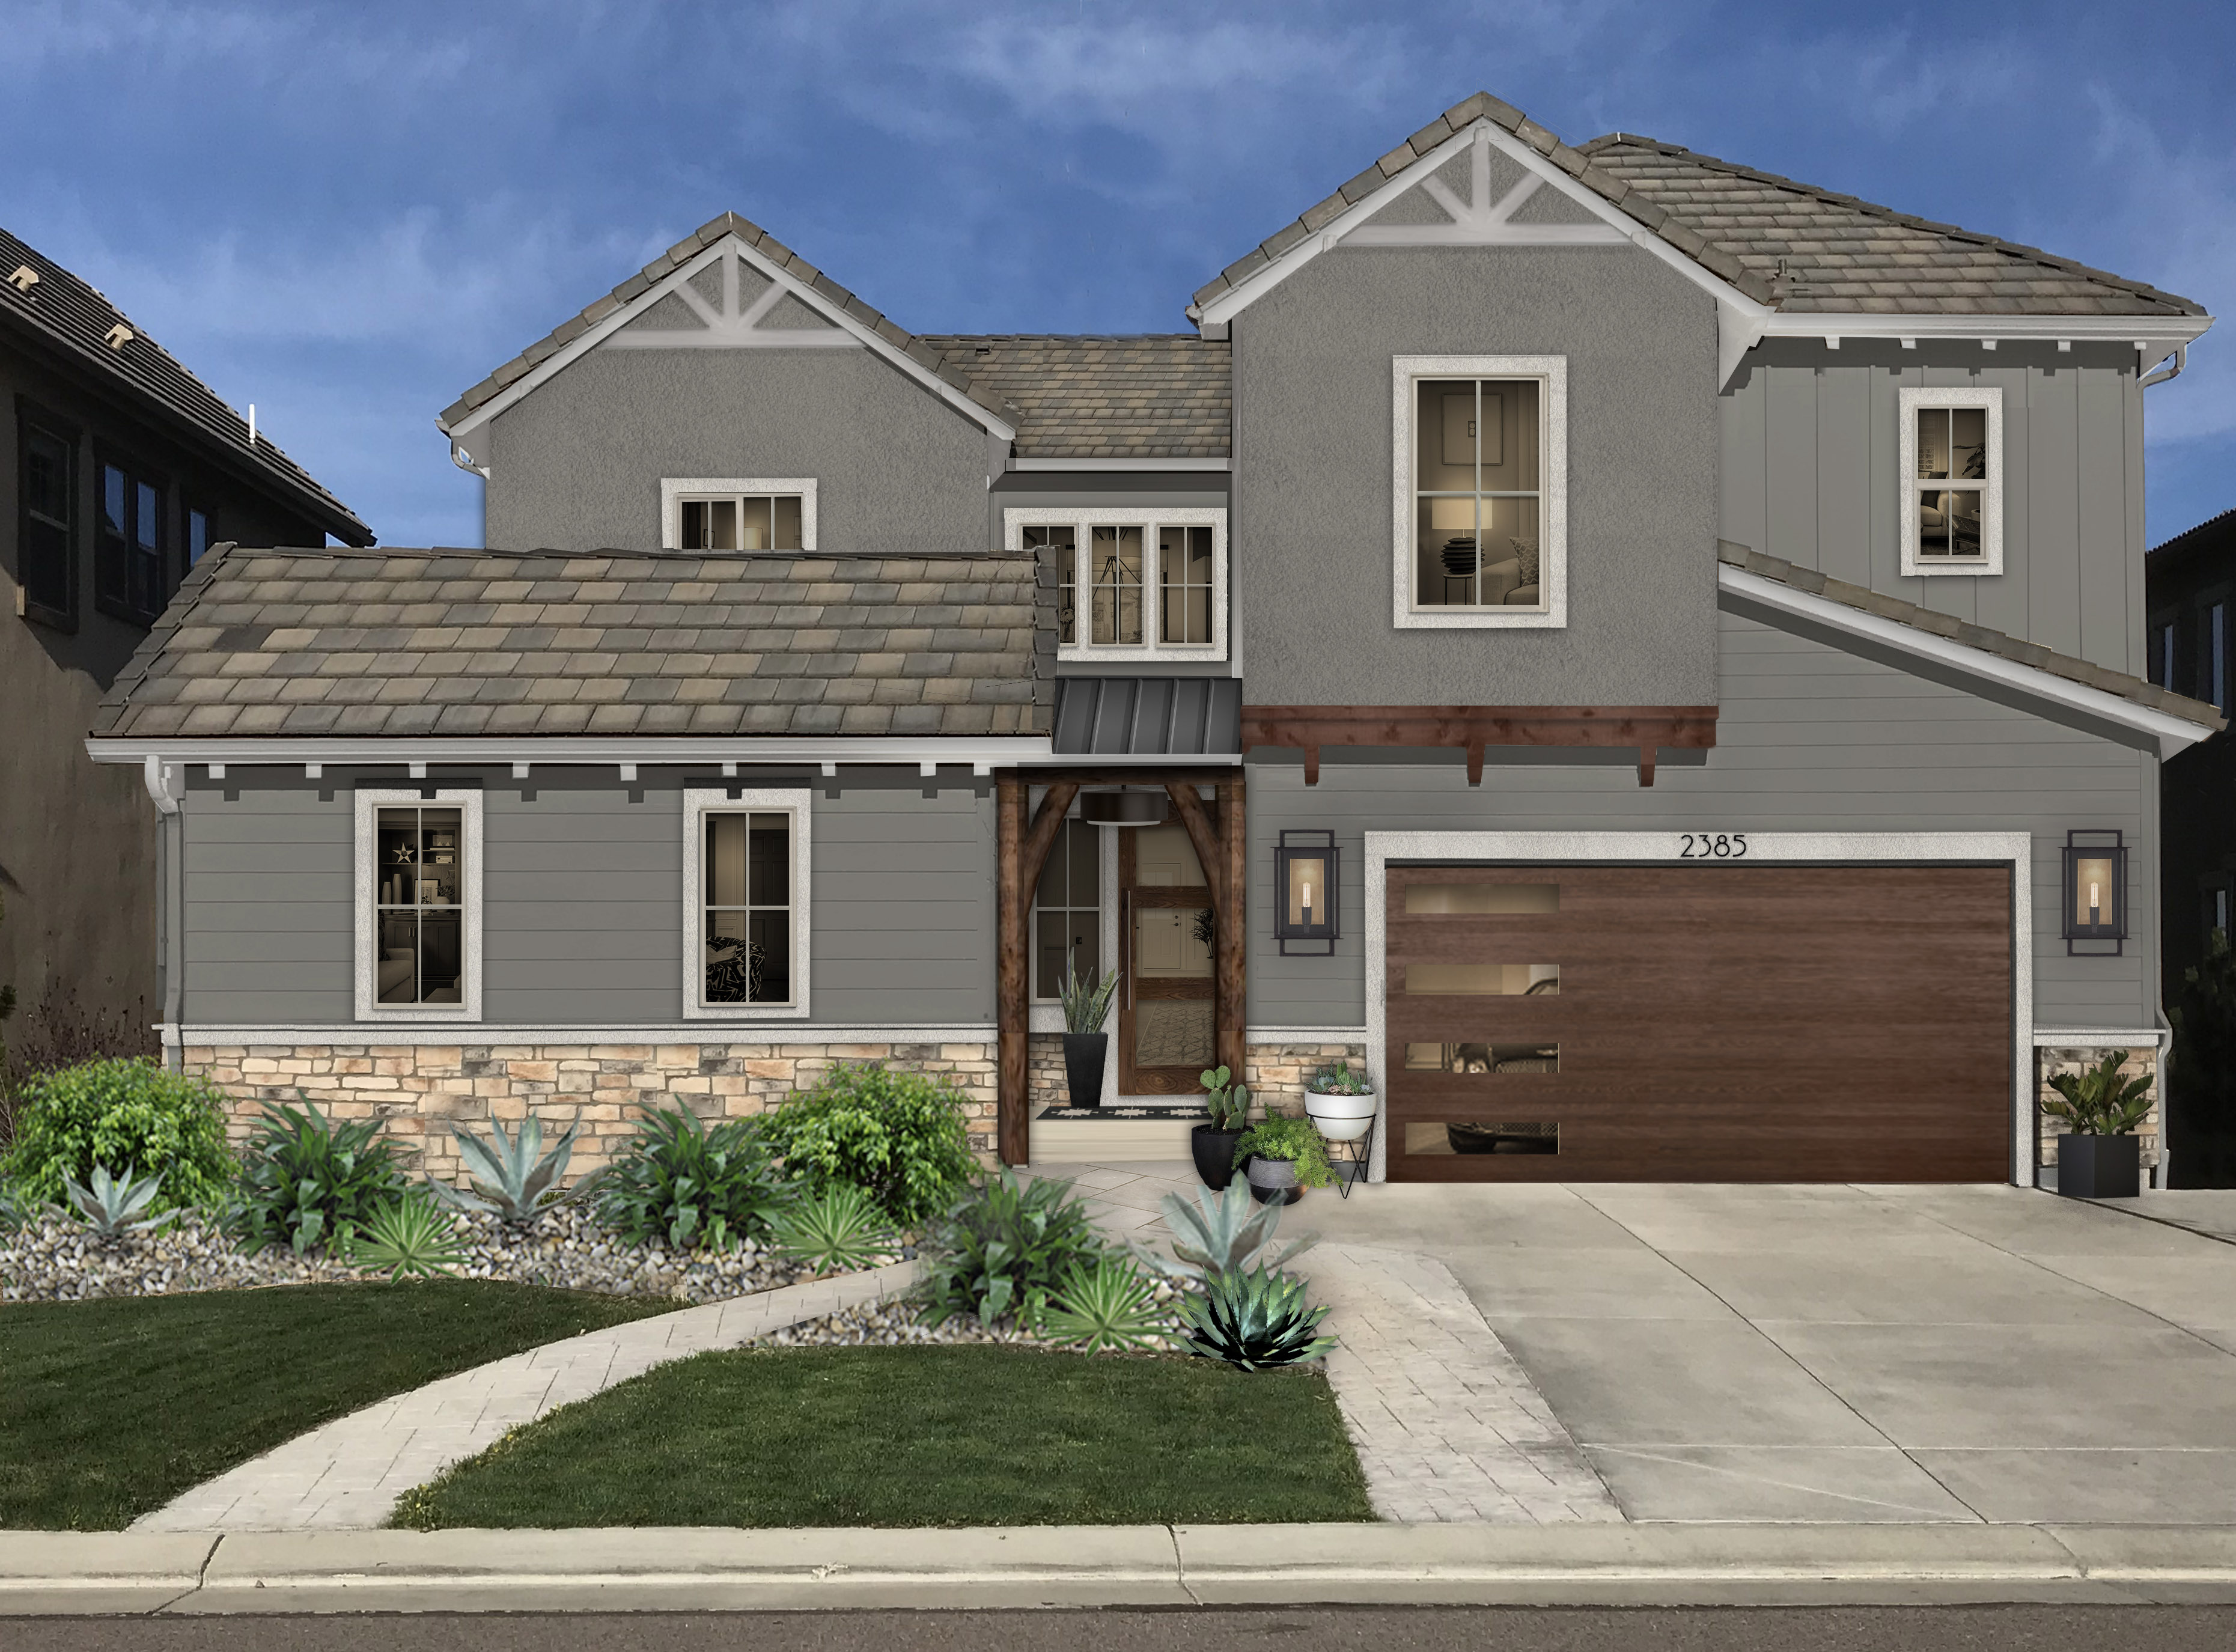 Virtual exterior design of a home with stucco and siding painted in Chelsea Gray with wood and stone accents